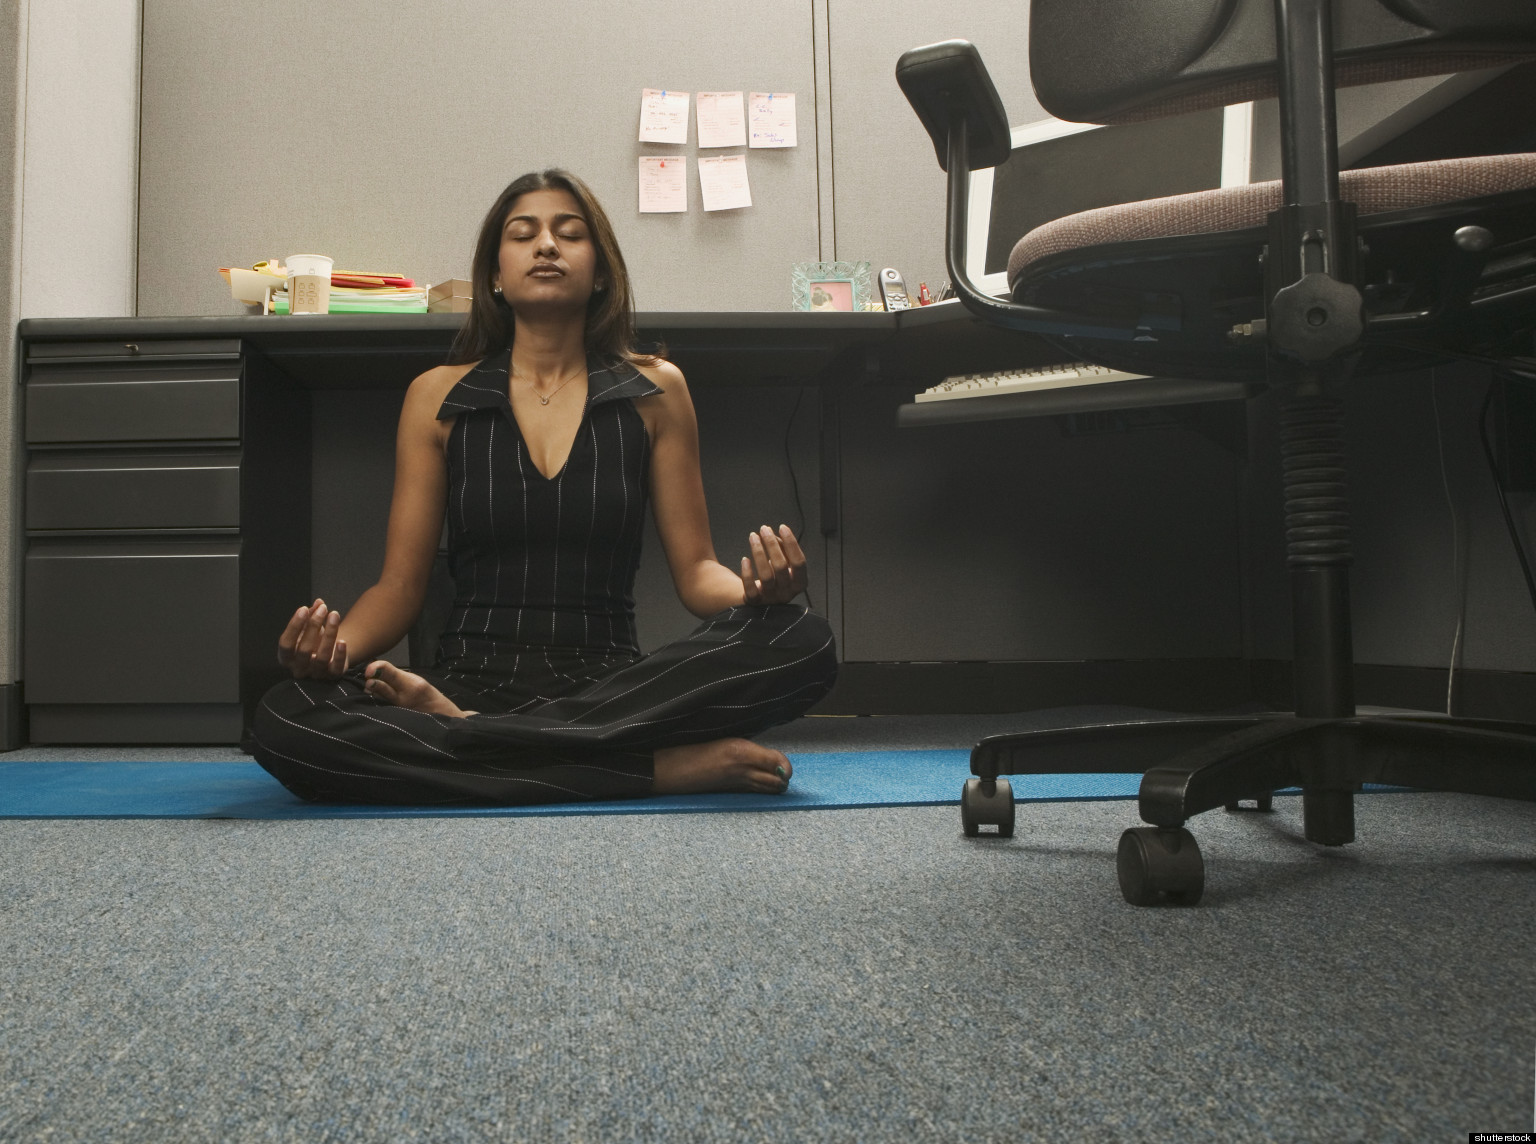 Stressed At Your Desk? 4 Mental Exercises To Practice At Work